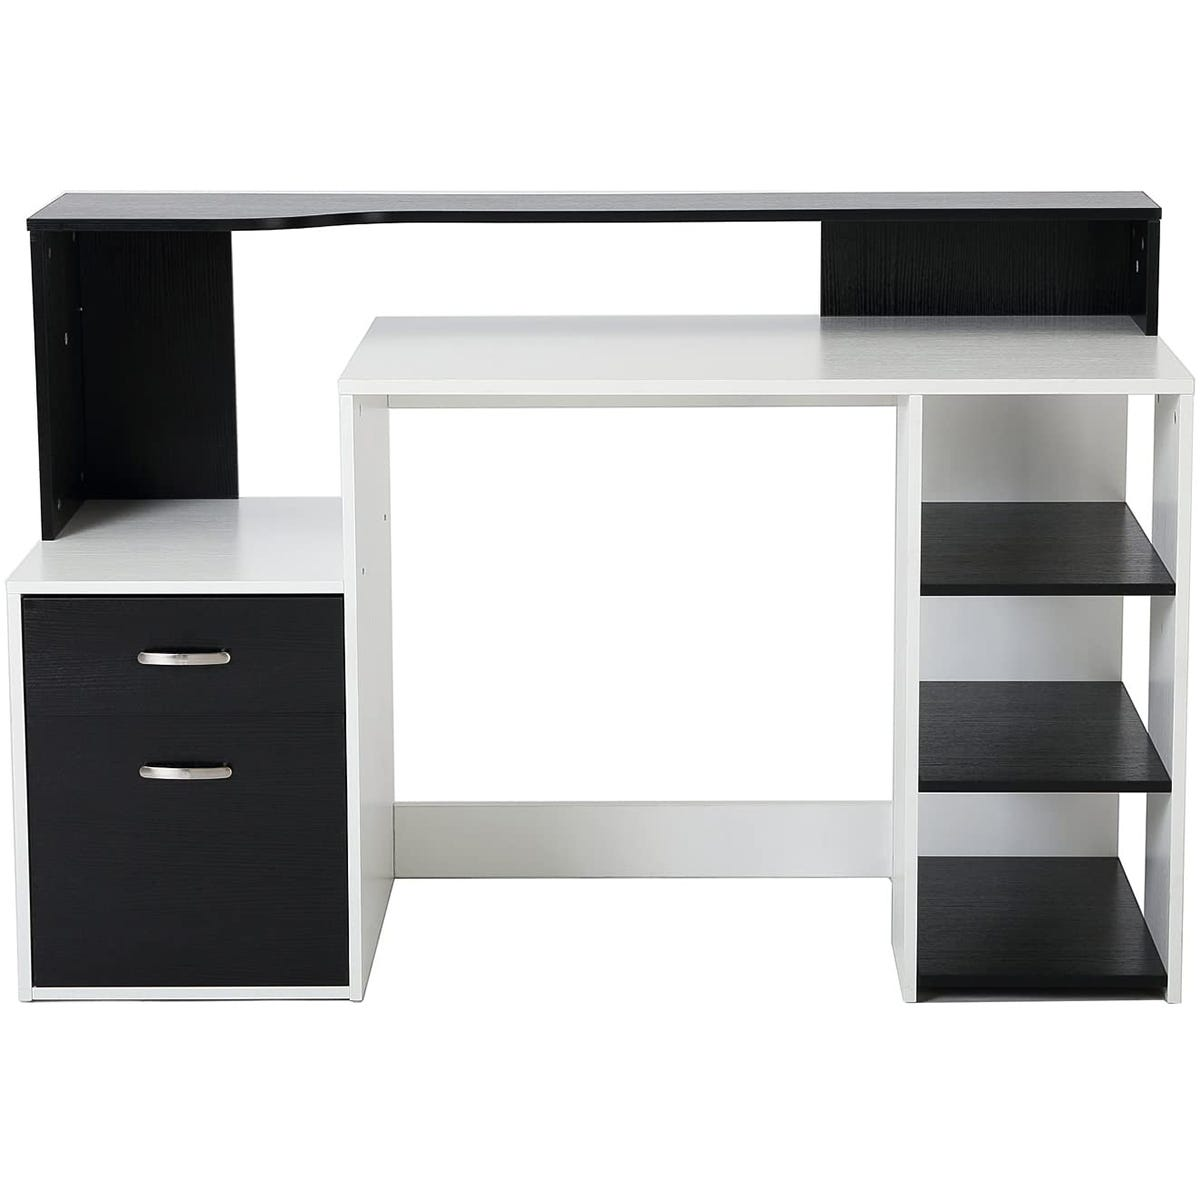 Zennor Galena Multi Level Computer Desk with Shelves & Storage - Black/White